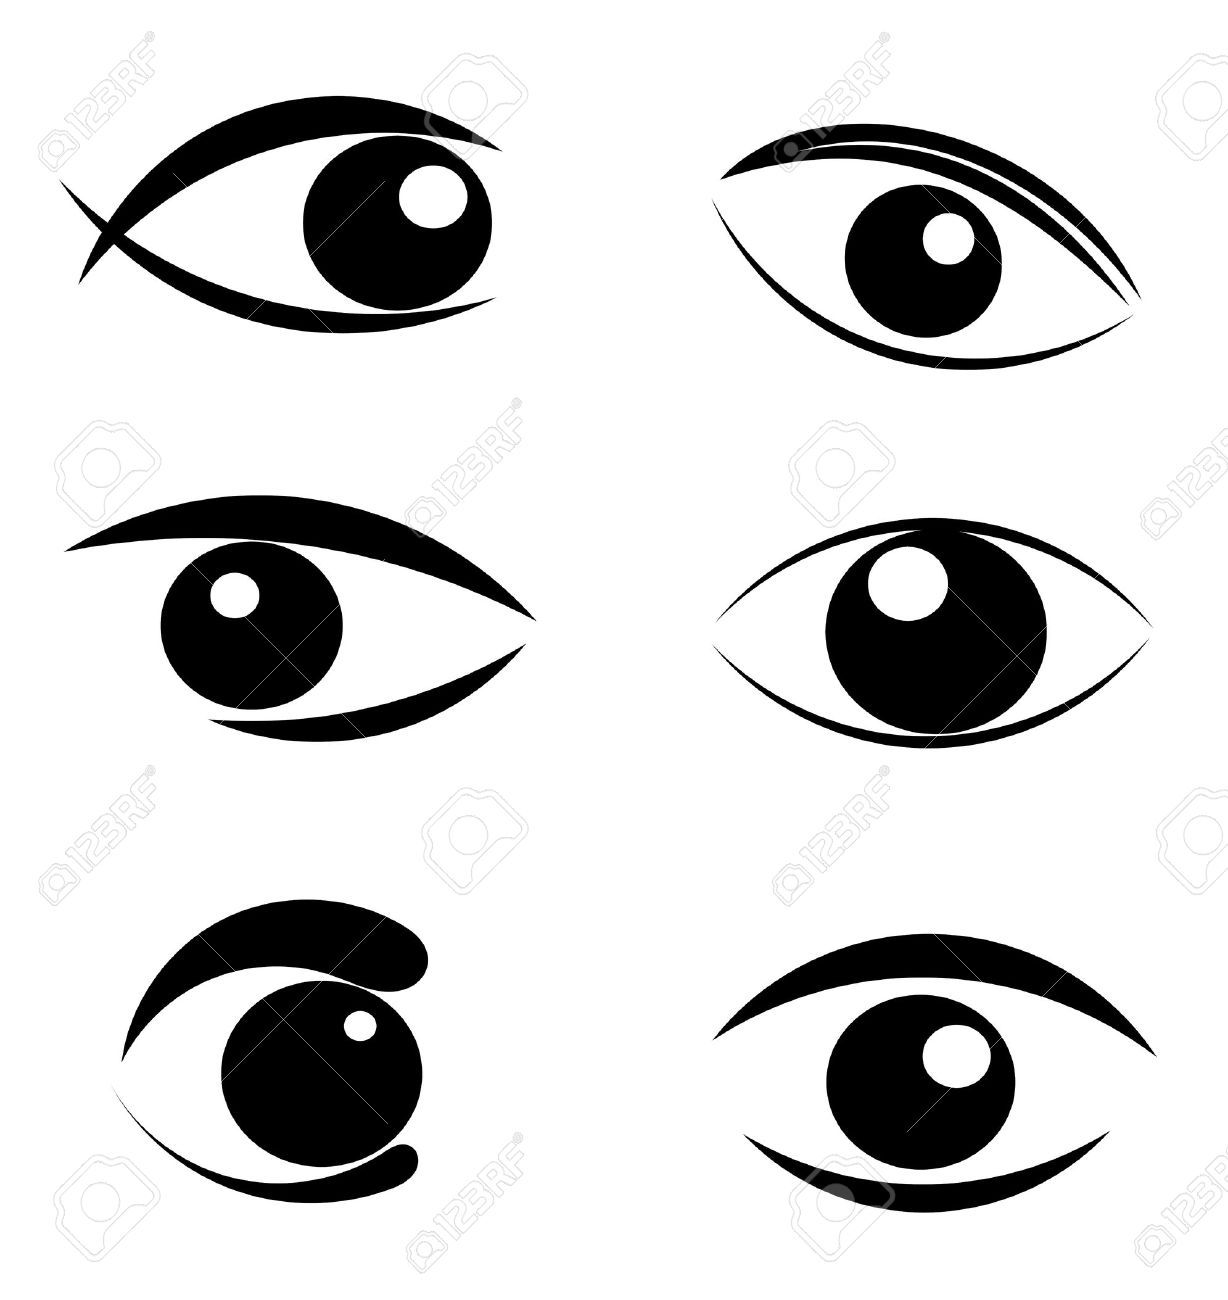 Squinting his eyes text. Clipart eye book